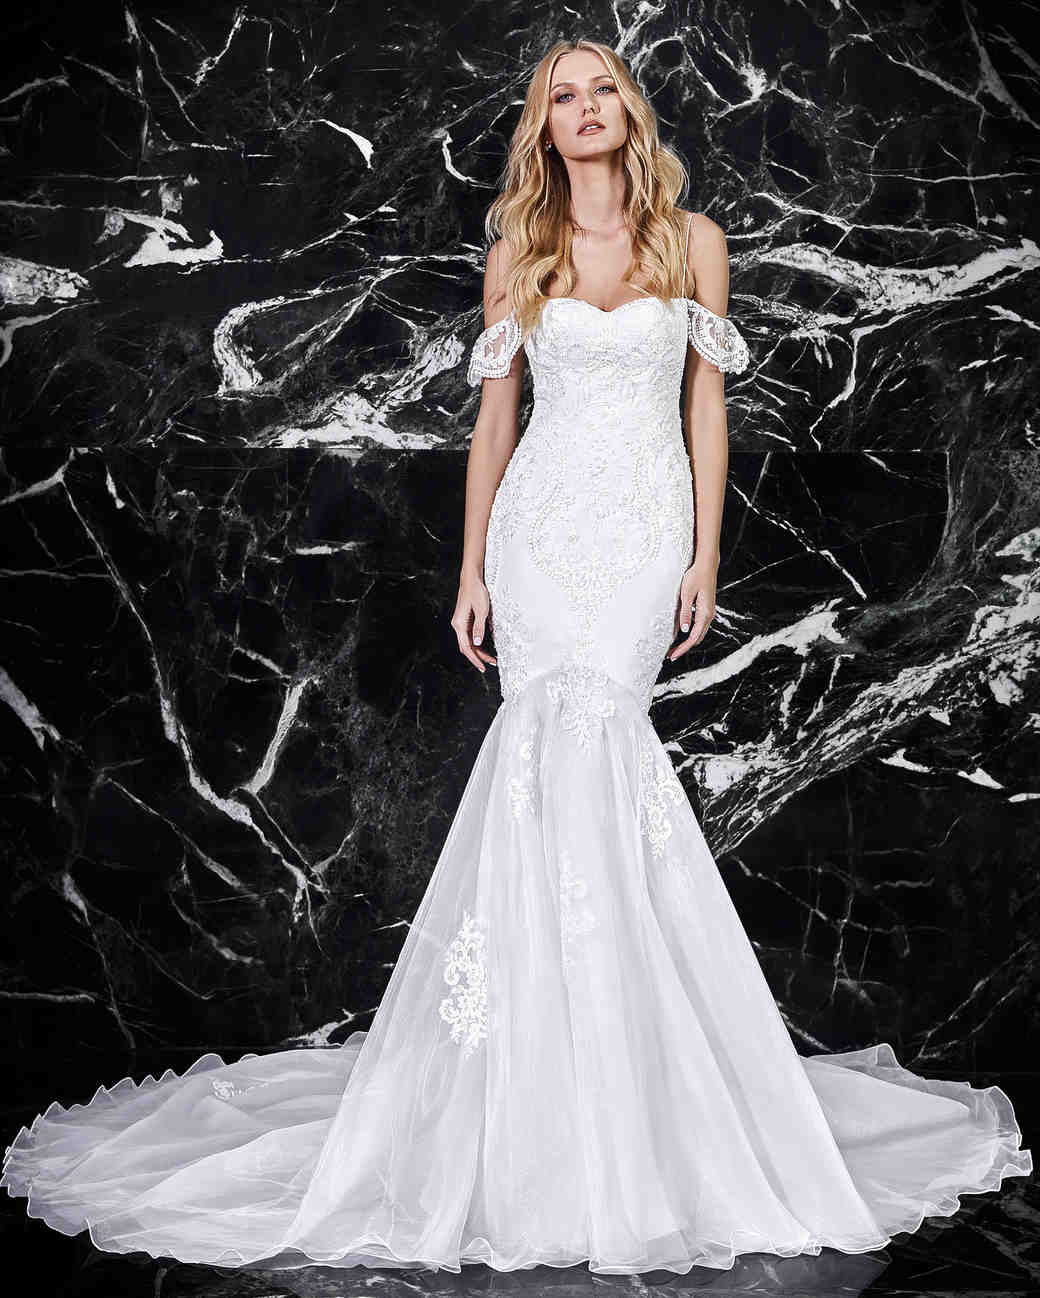 Altar Bound Wedding Dresses: Victoria Kyriakides Spring 2018 Wedding Dress Collection